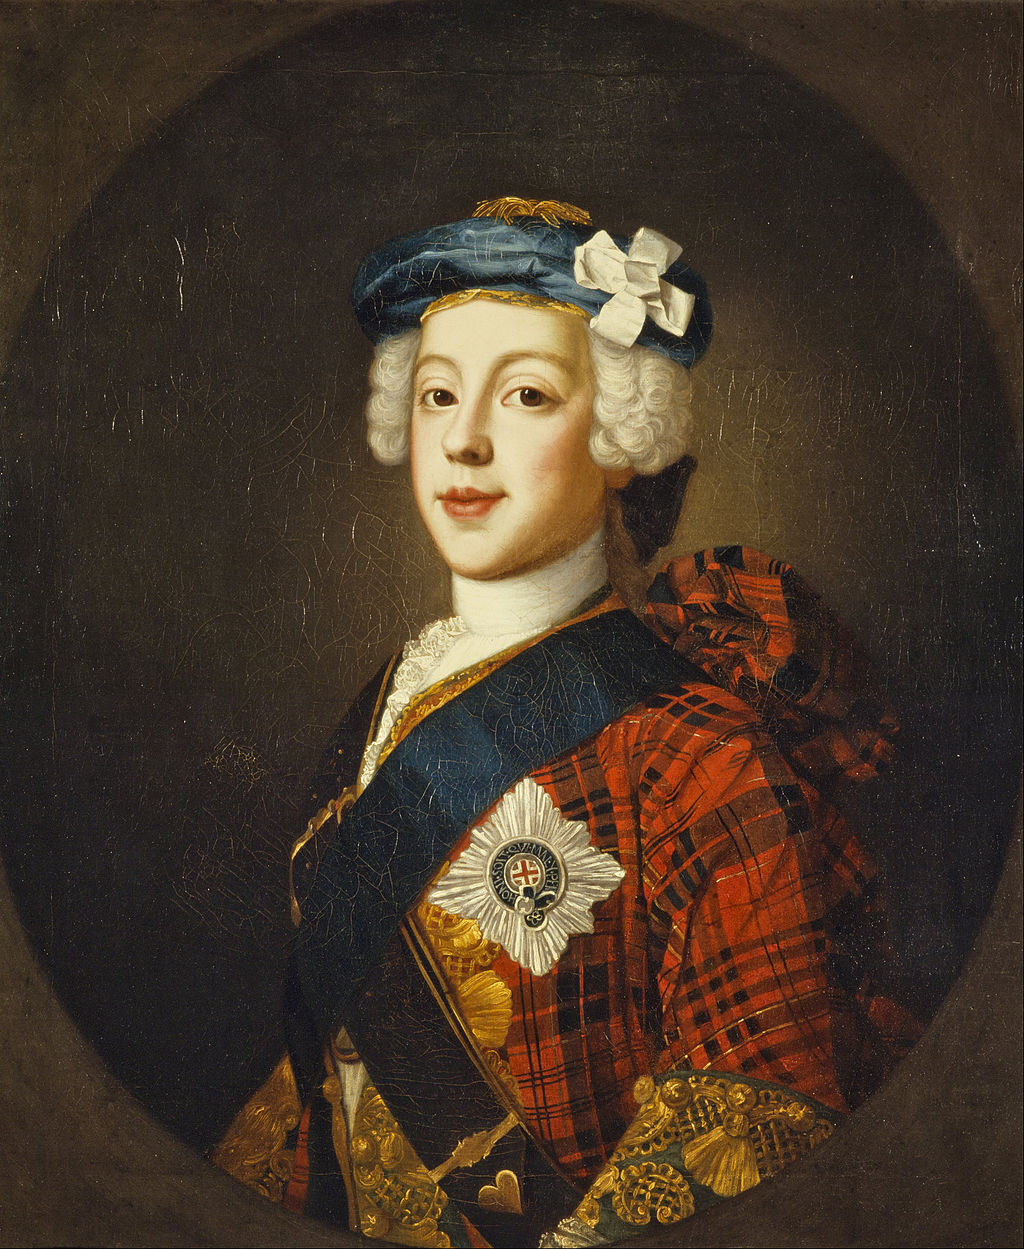 Painting of Bonnie Prince Charlie by William Mosman.